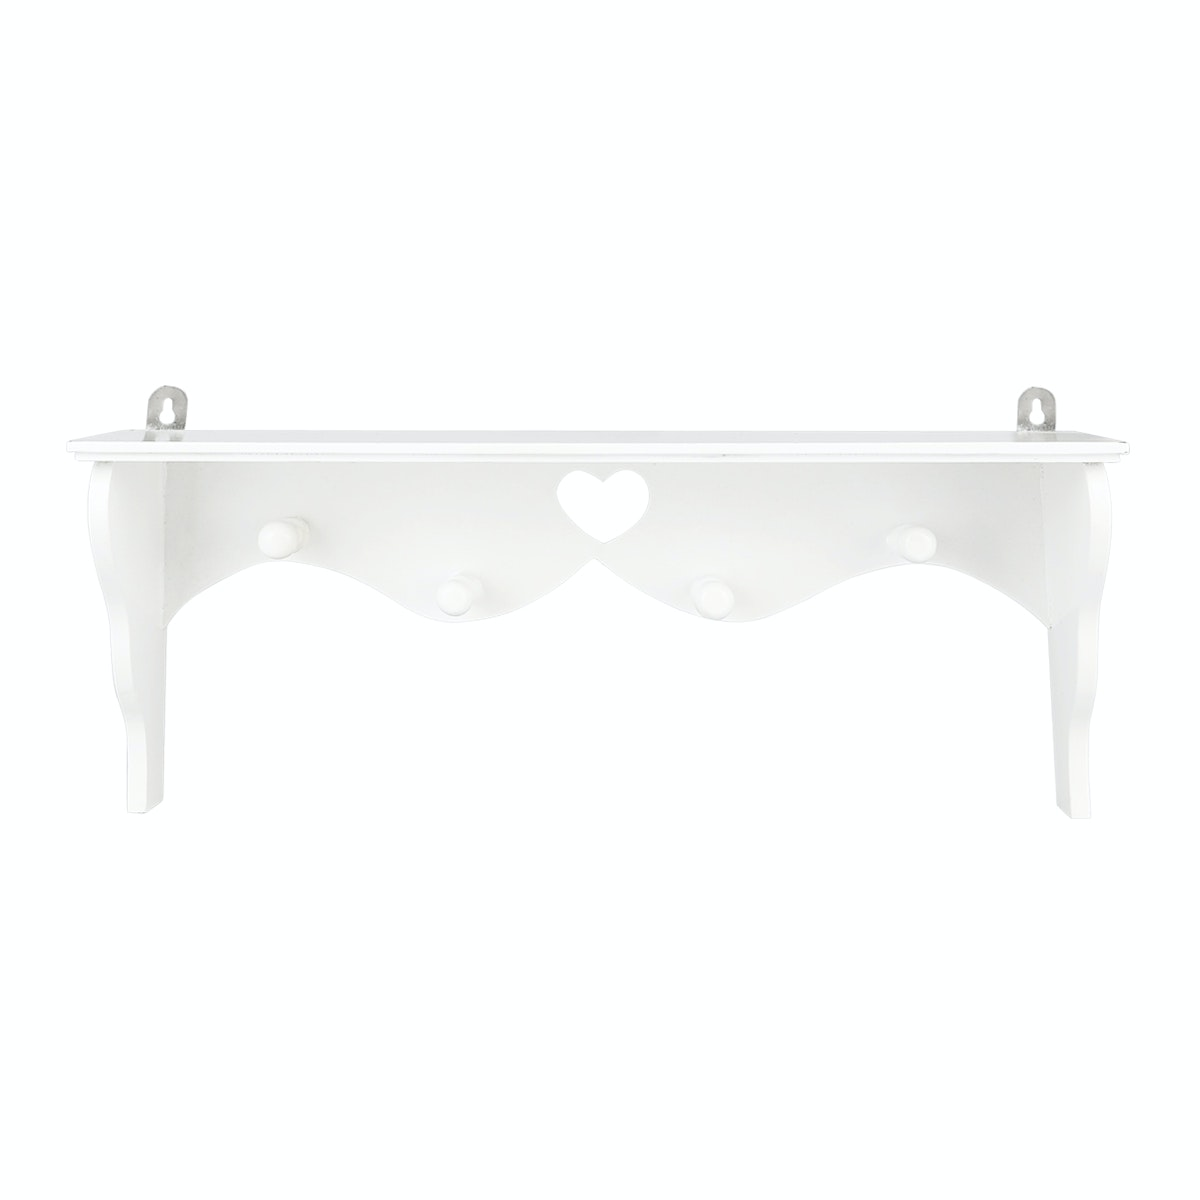 White Lace House Heart Wood Stack White